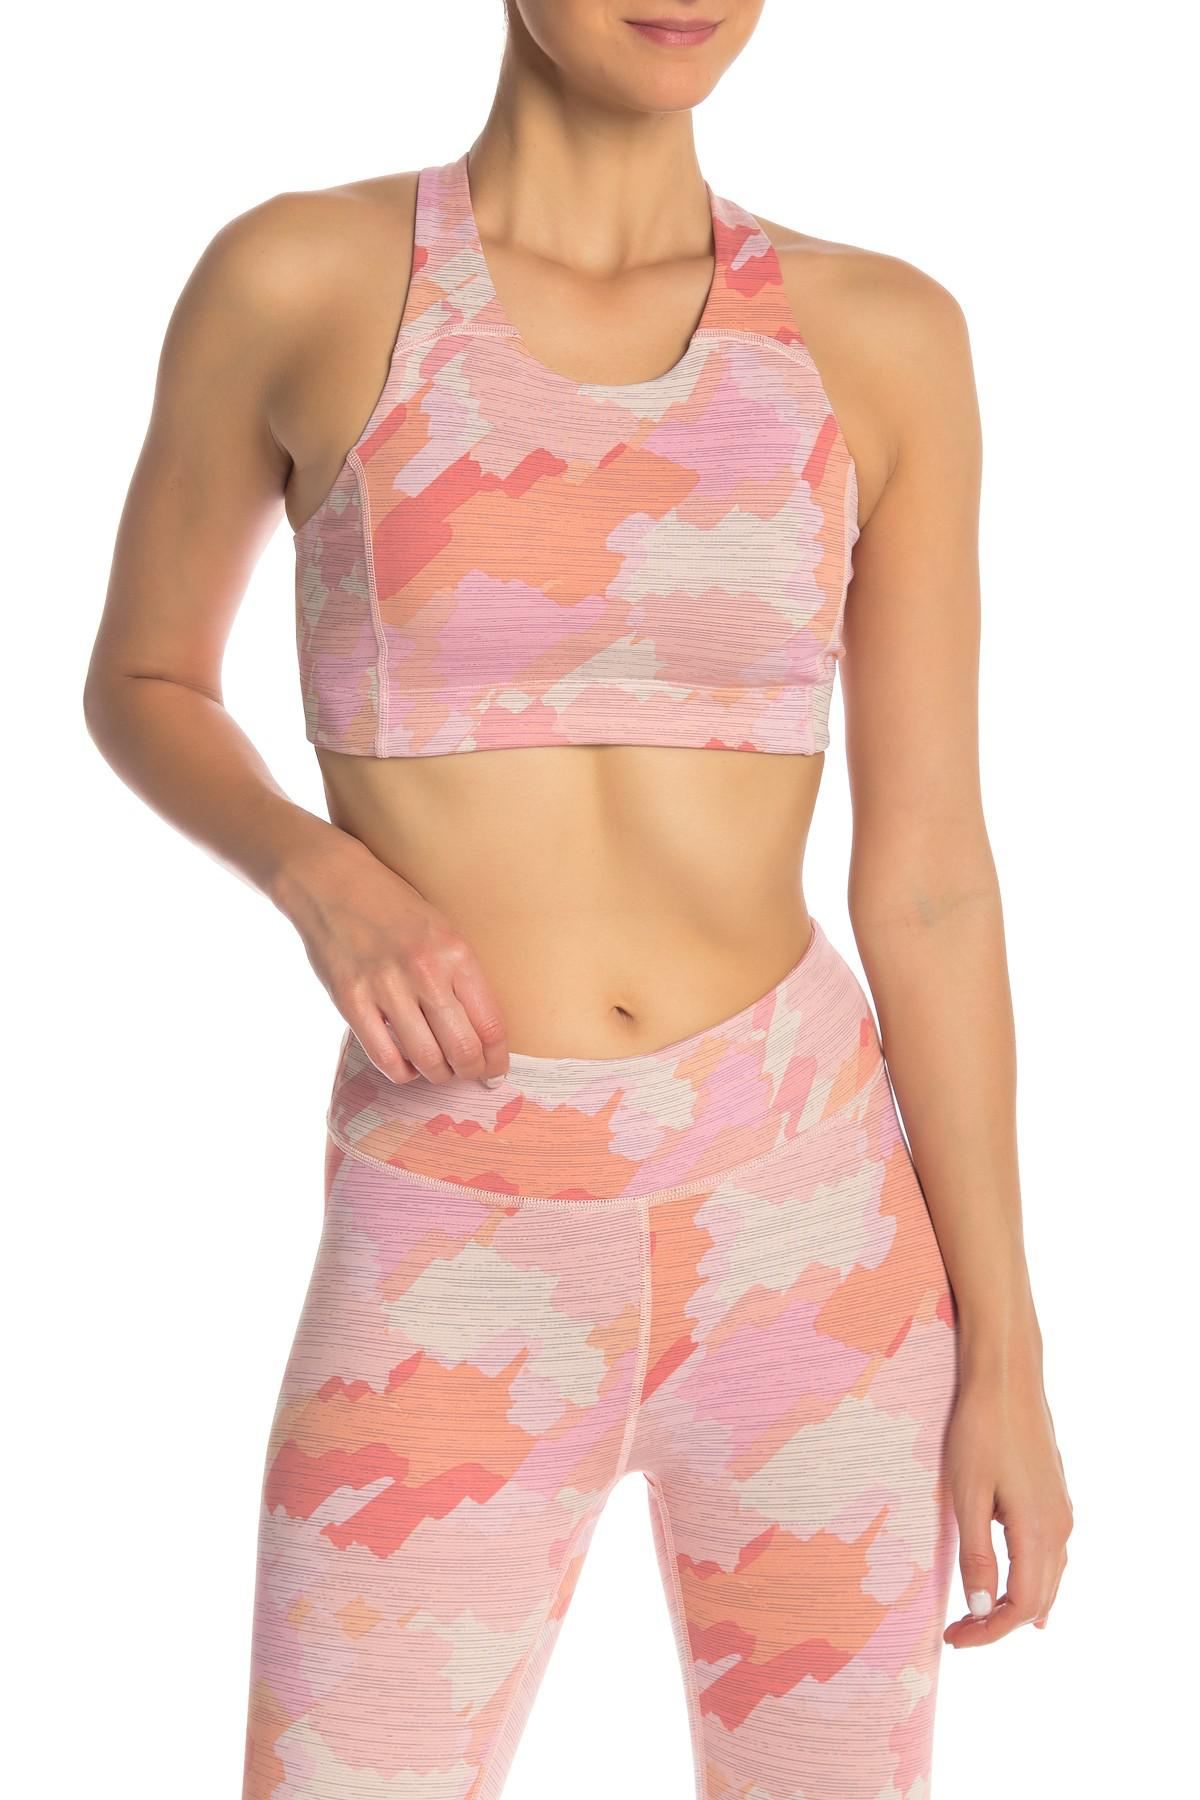 693338379c Lyst - Outdoor Voices Printed Sports Bra in Pink